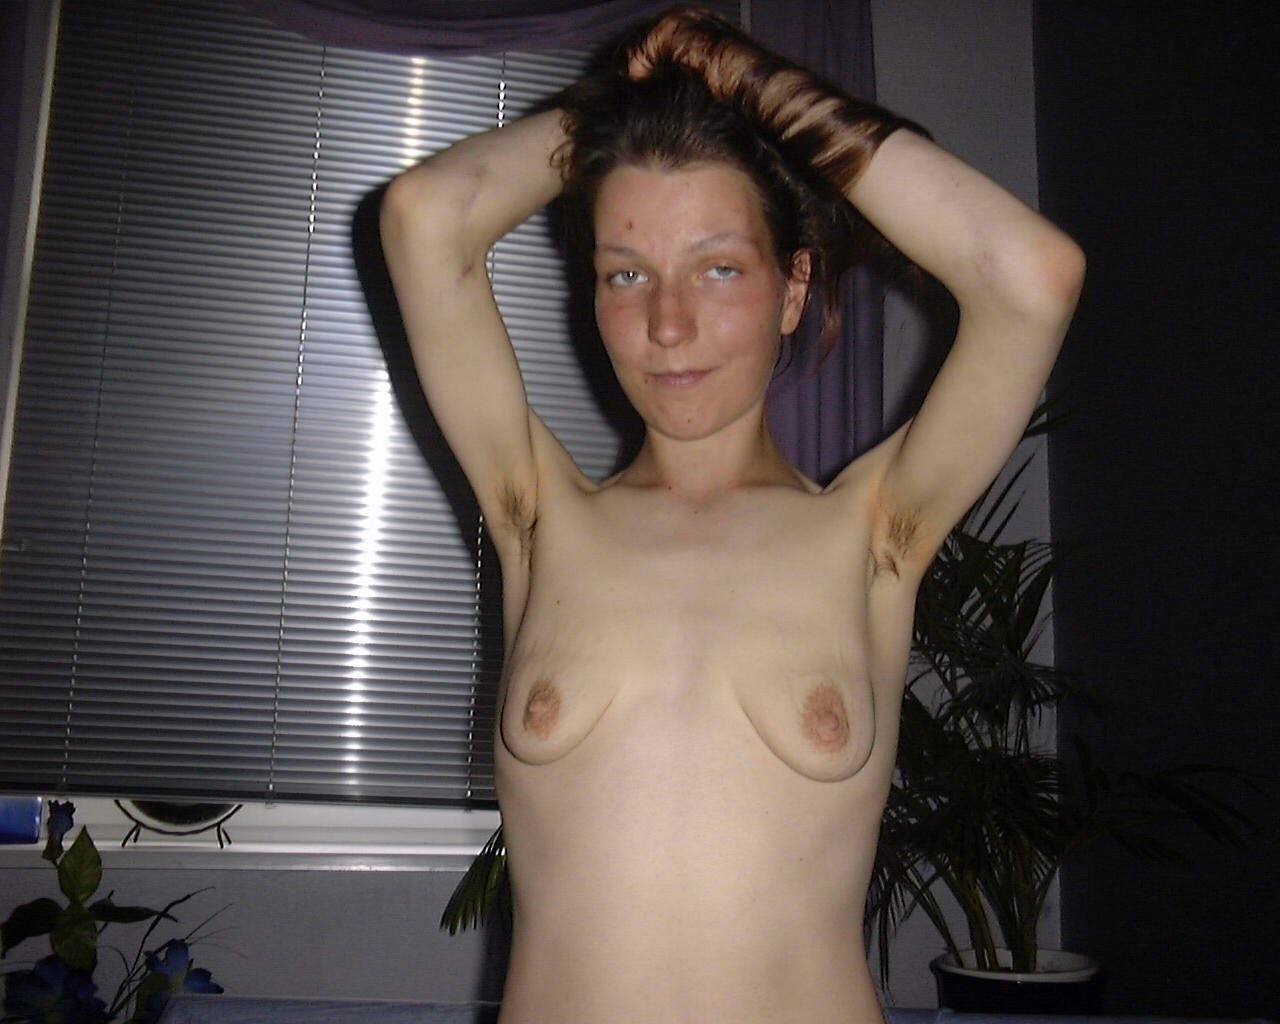 droopy tits